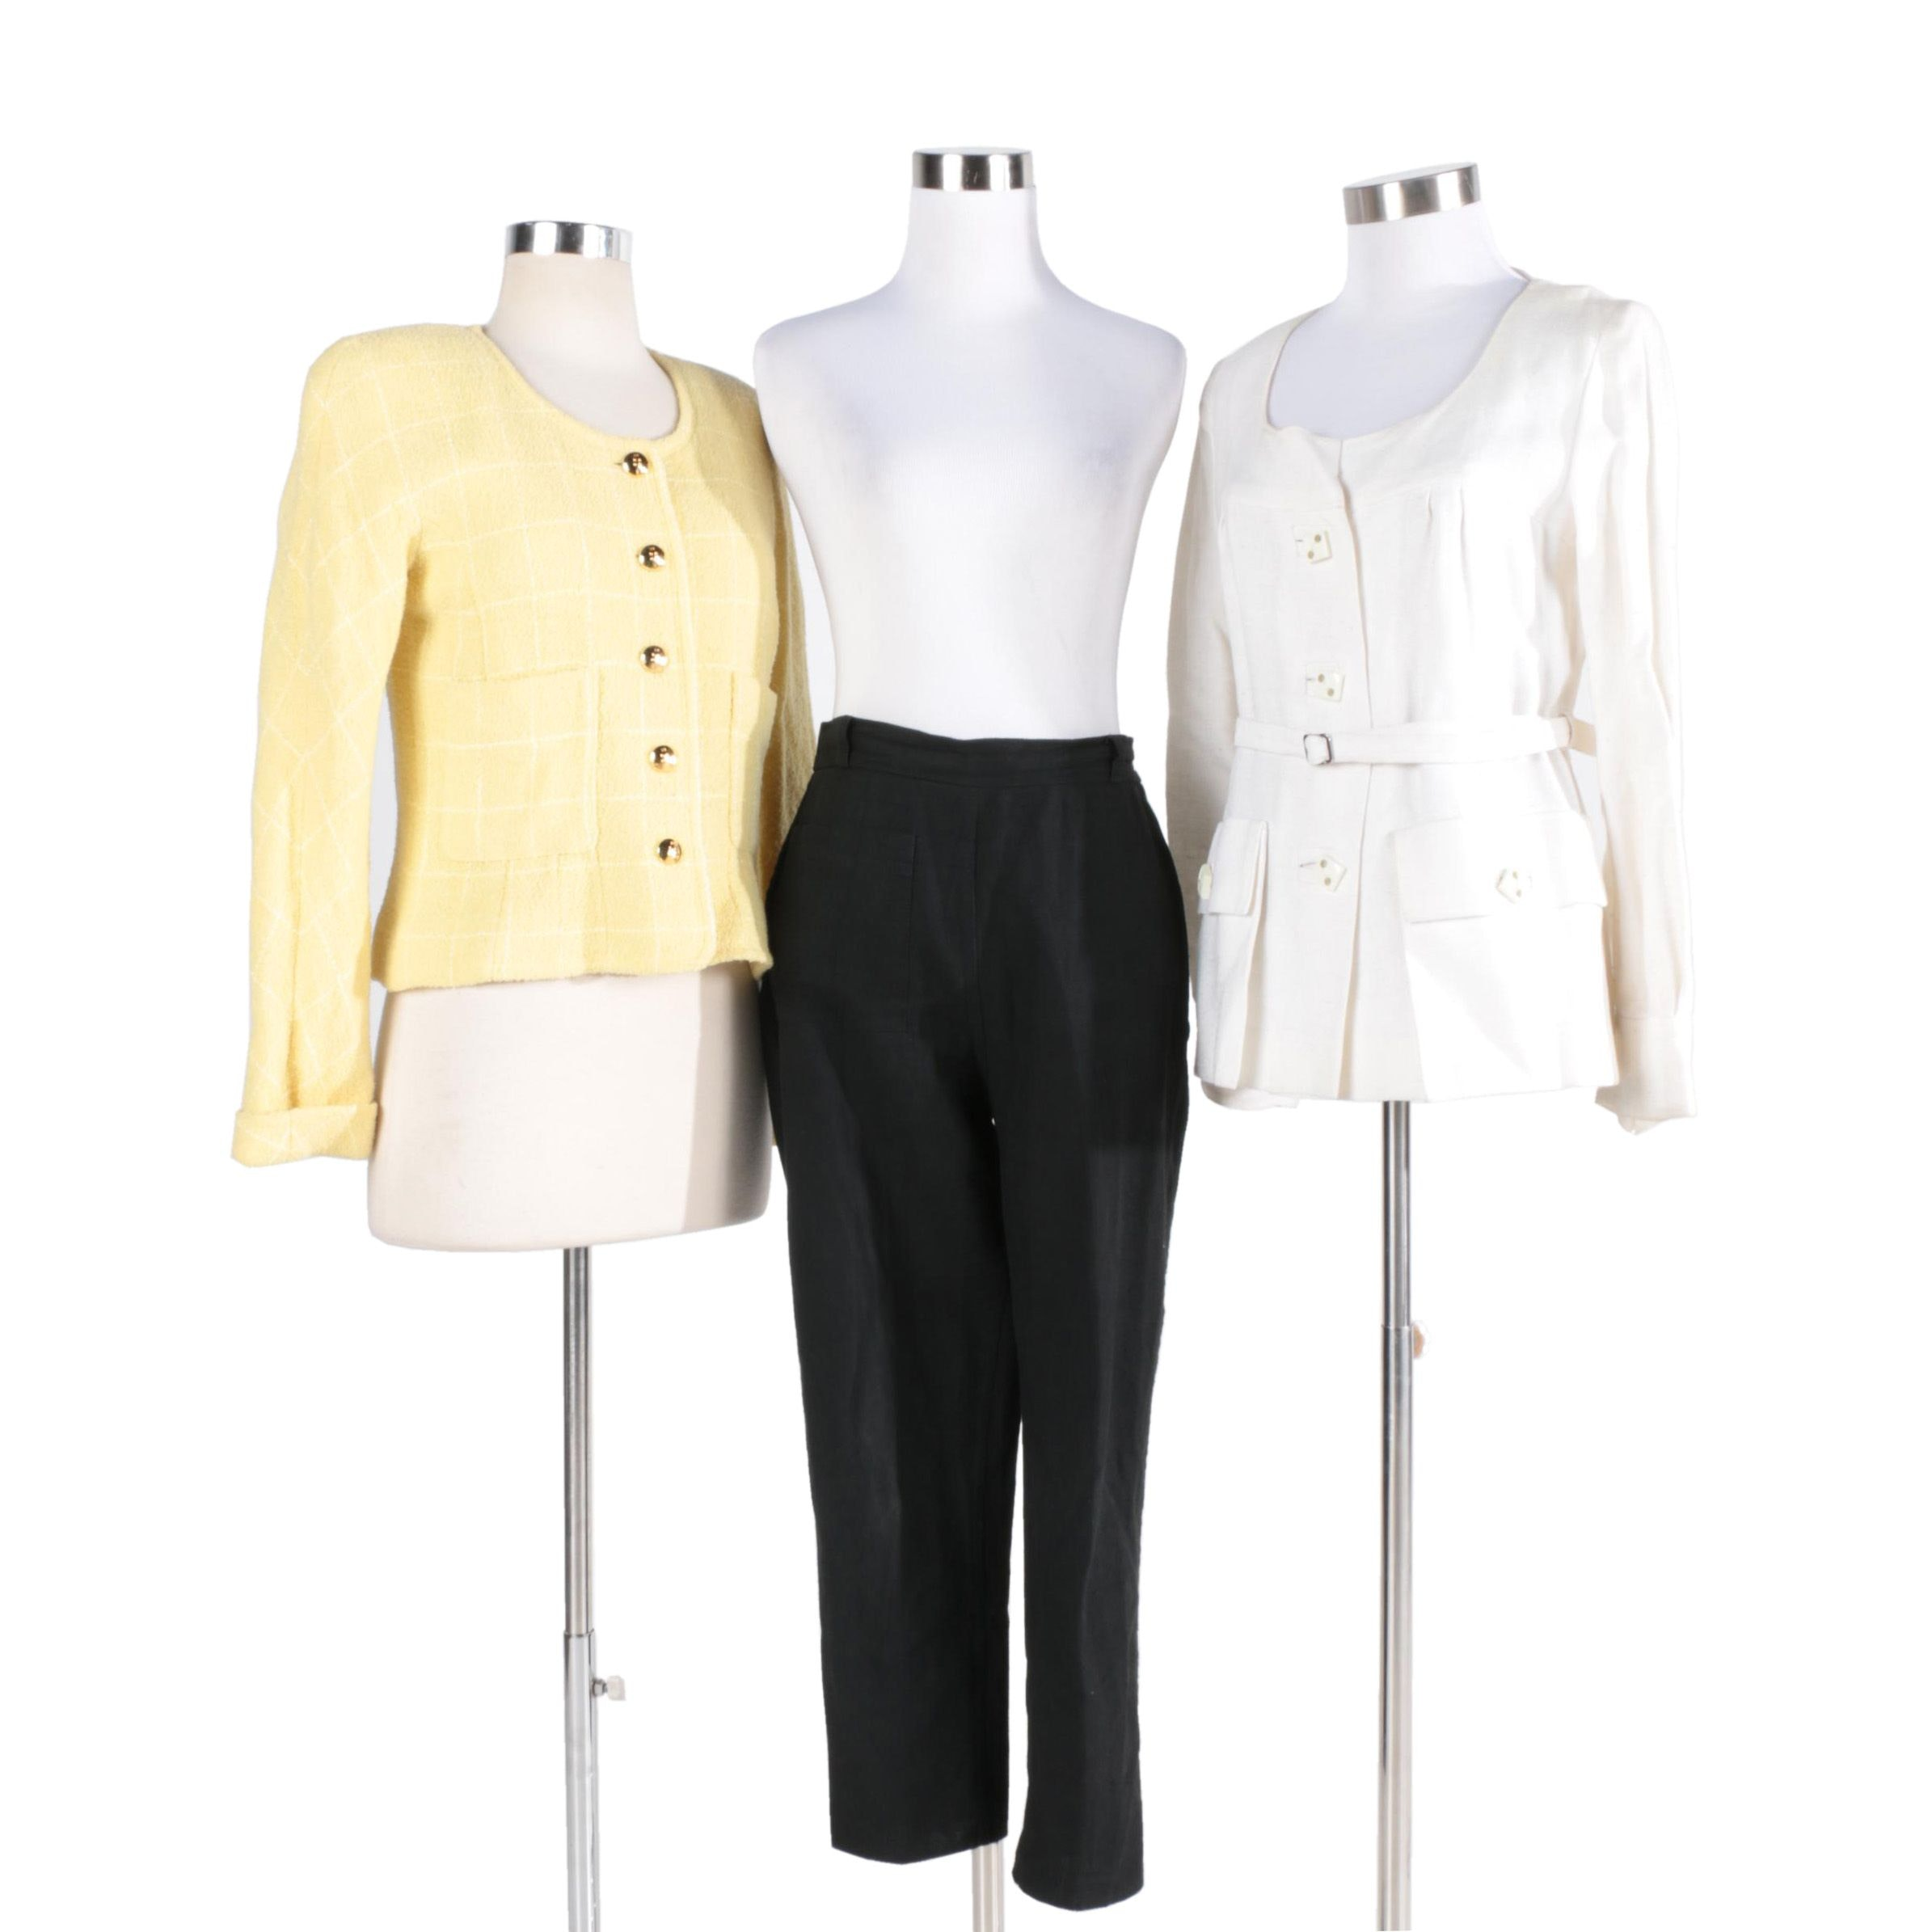 Sonia Rykiel Brand Jackets and Pants